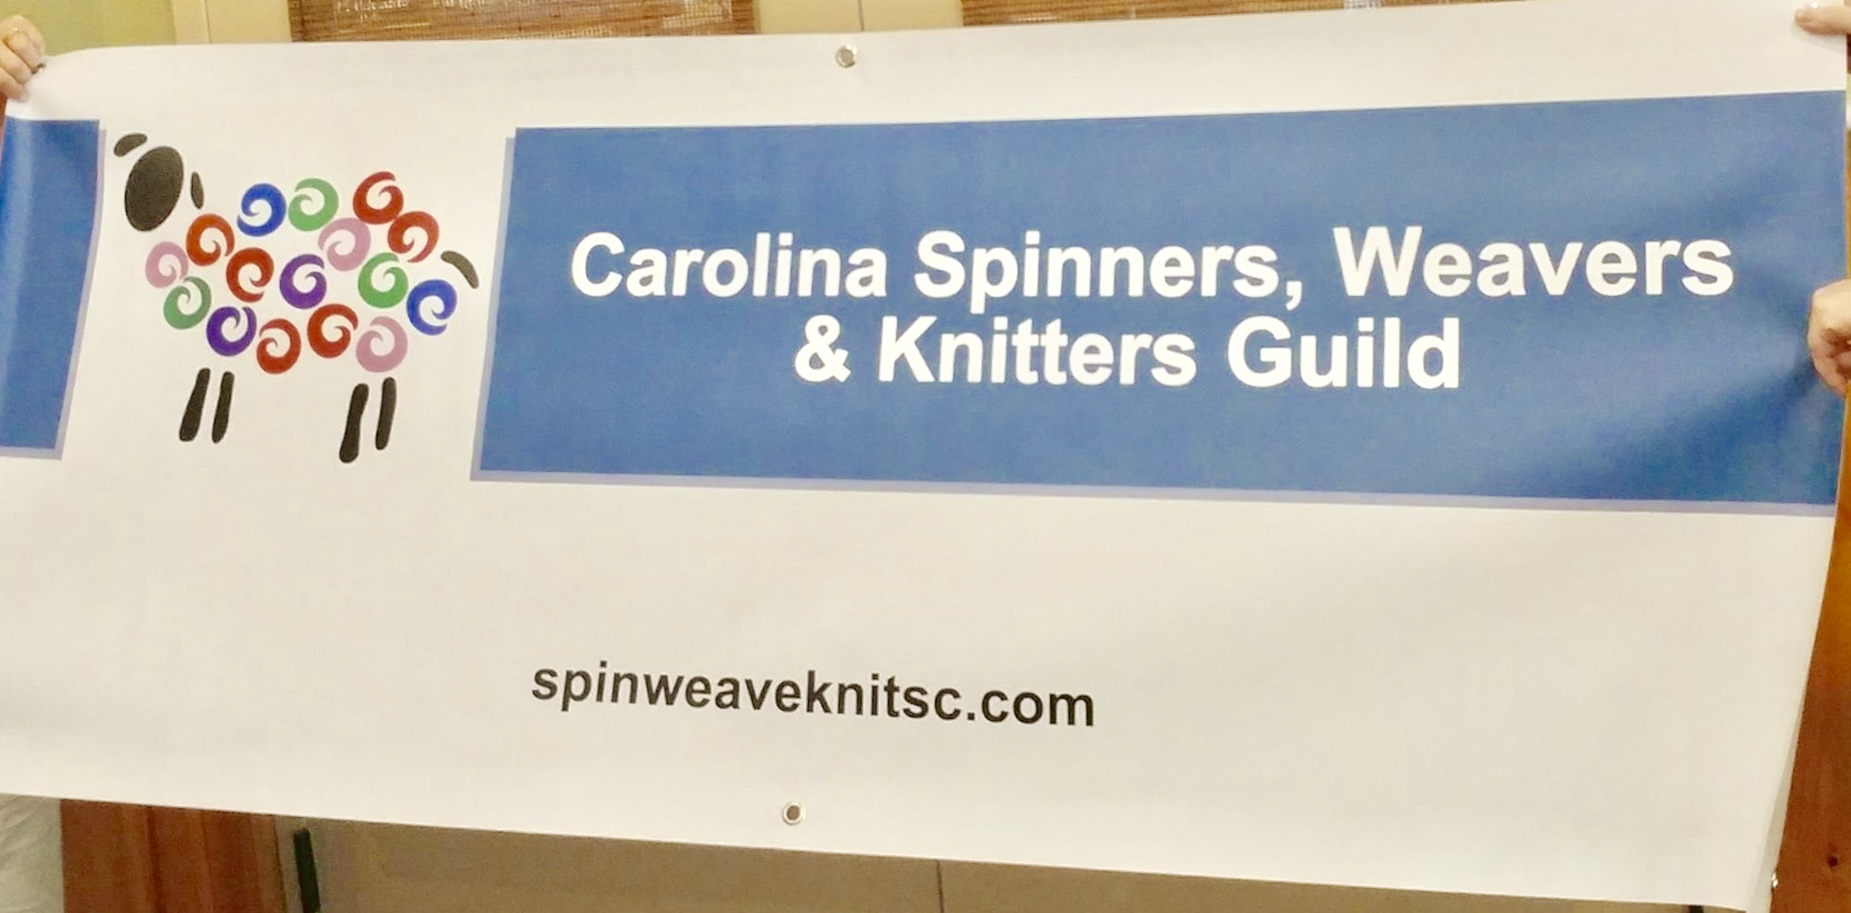 Carolina Spinners, Weavers & Knitters Guild Banner